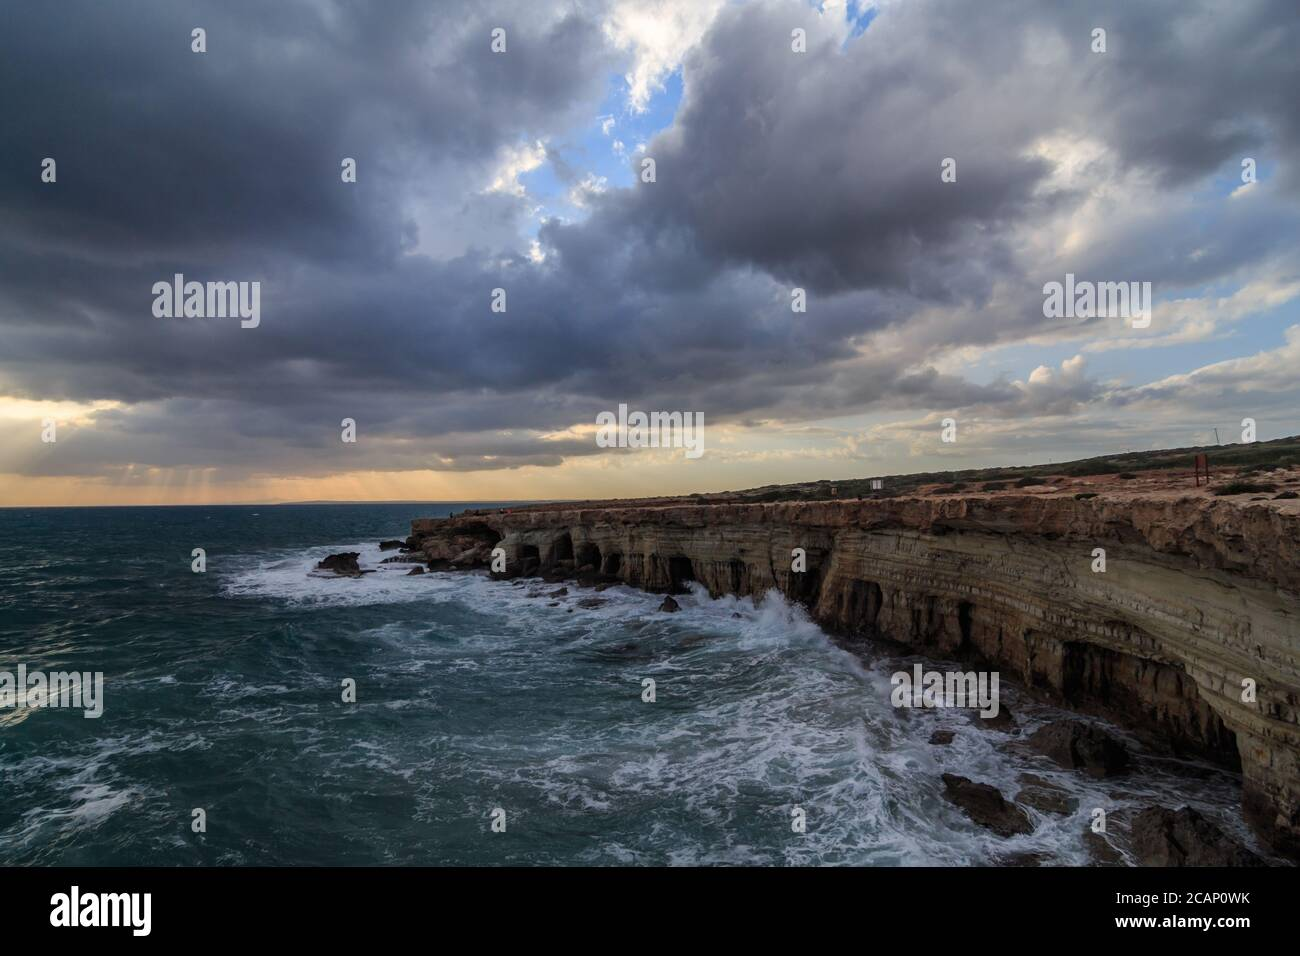 Sea Caves - Mediterranean Sea landscape near Ayia Napa, Cyprus during a stormy cloudy sunset Stock Photo